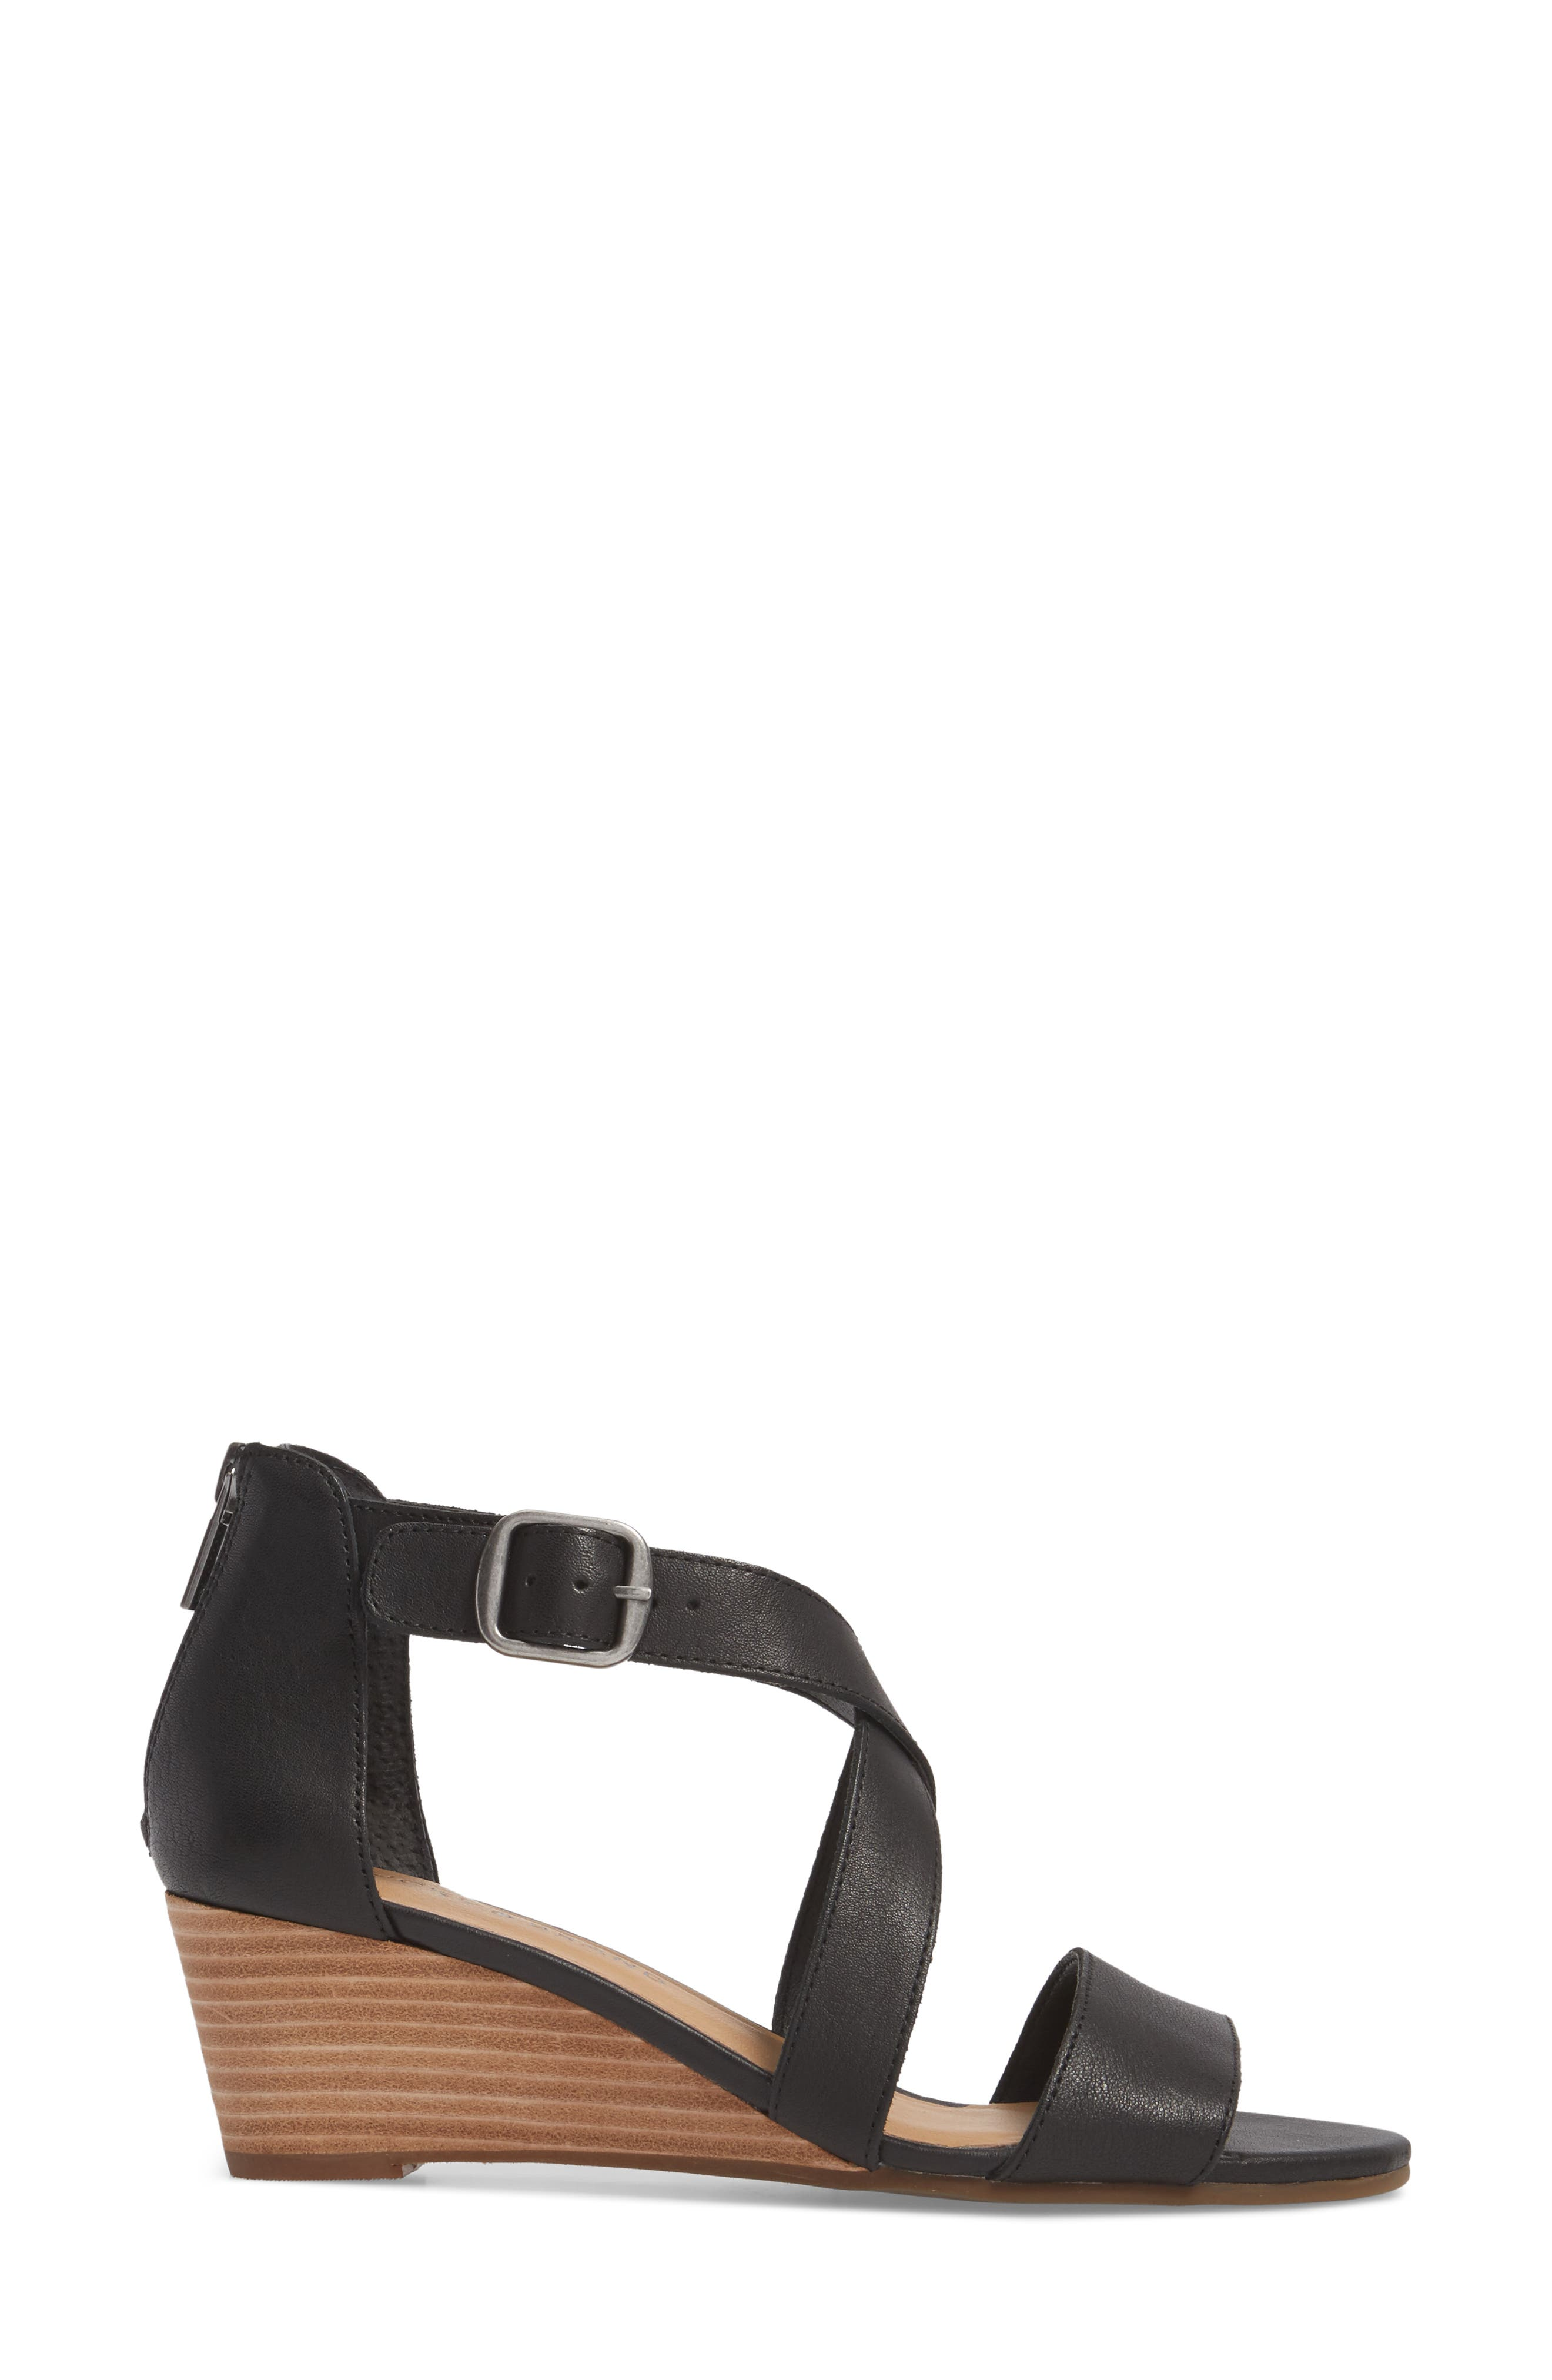 Jestah Wedge Sandal,                             Alternate thumbnail 3, color,                             Black Leather